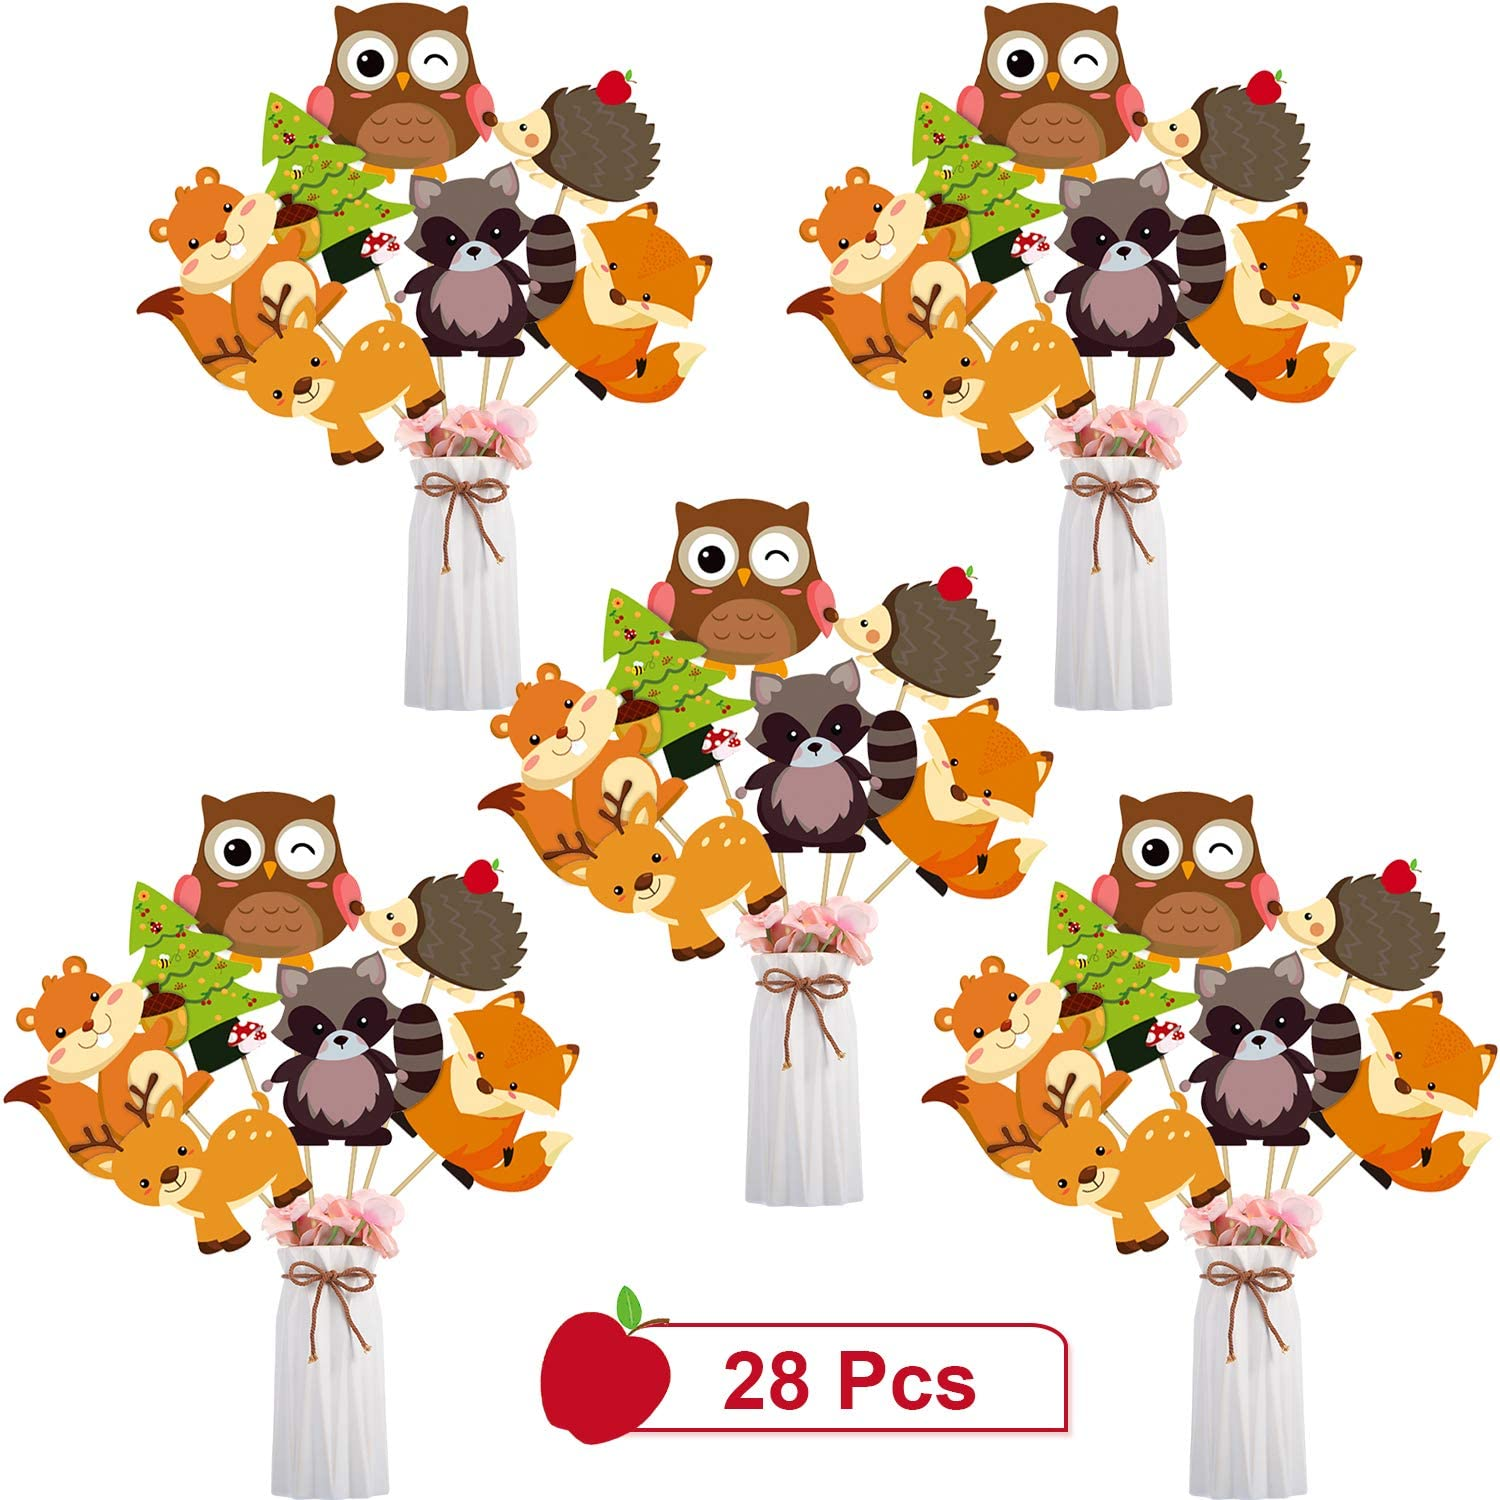 Blulu 28 Pieces Wooden Animal Party Decorations Wooden Animals Centerpiece Sticks Animals Cutouts Table Toppers for Theme Party Birthday Party Baby Shower Supplies (Wooden Animal)